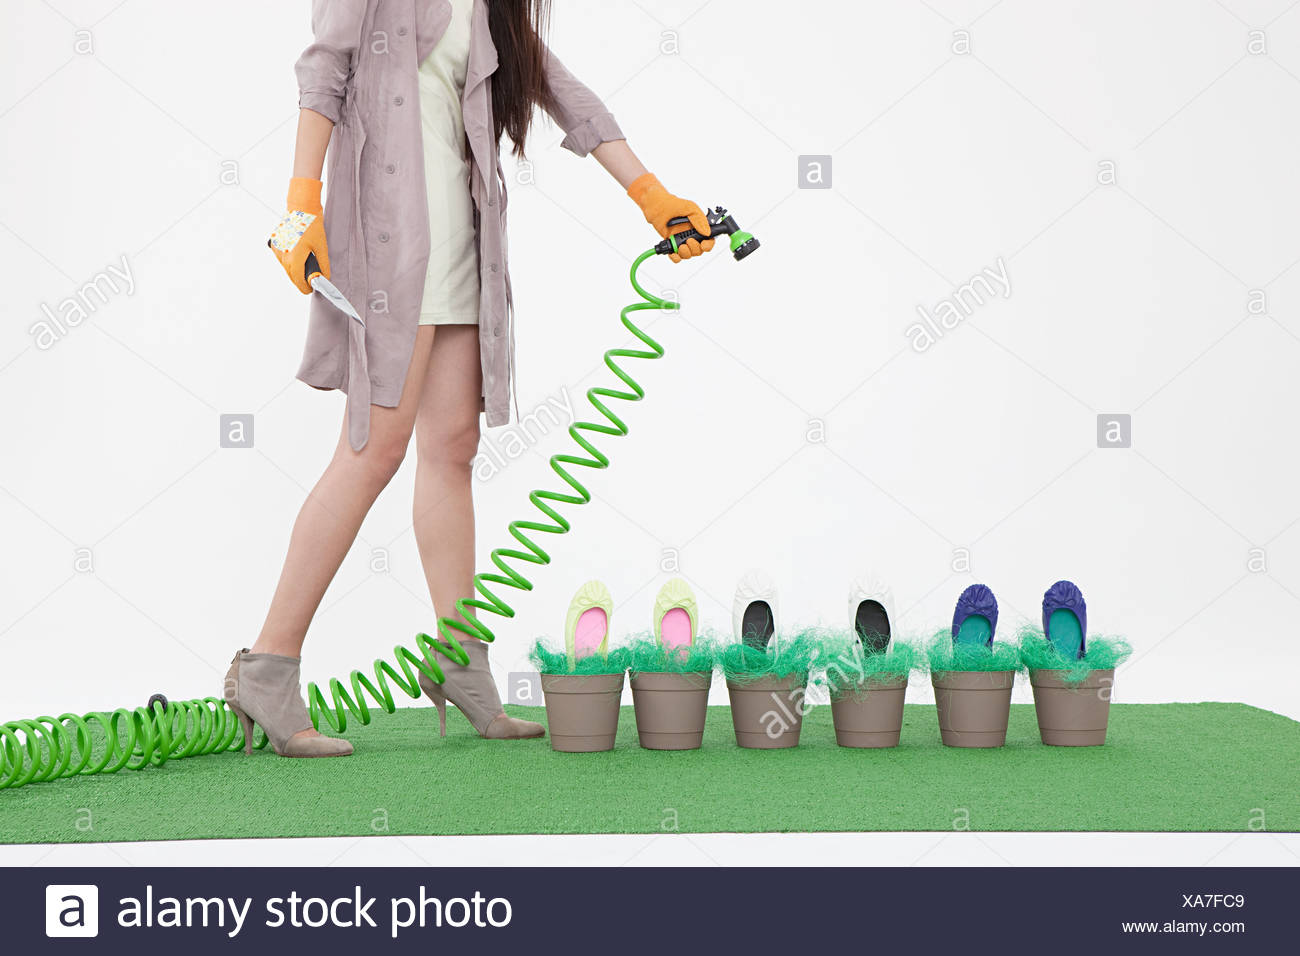 Woman with hosepipe and shoes in flower pots - Stock Image